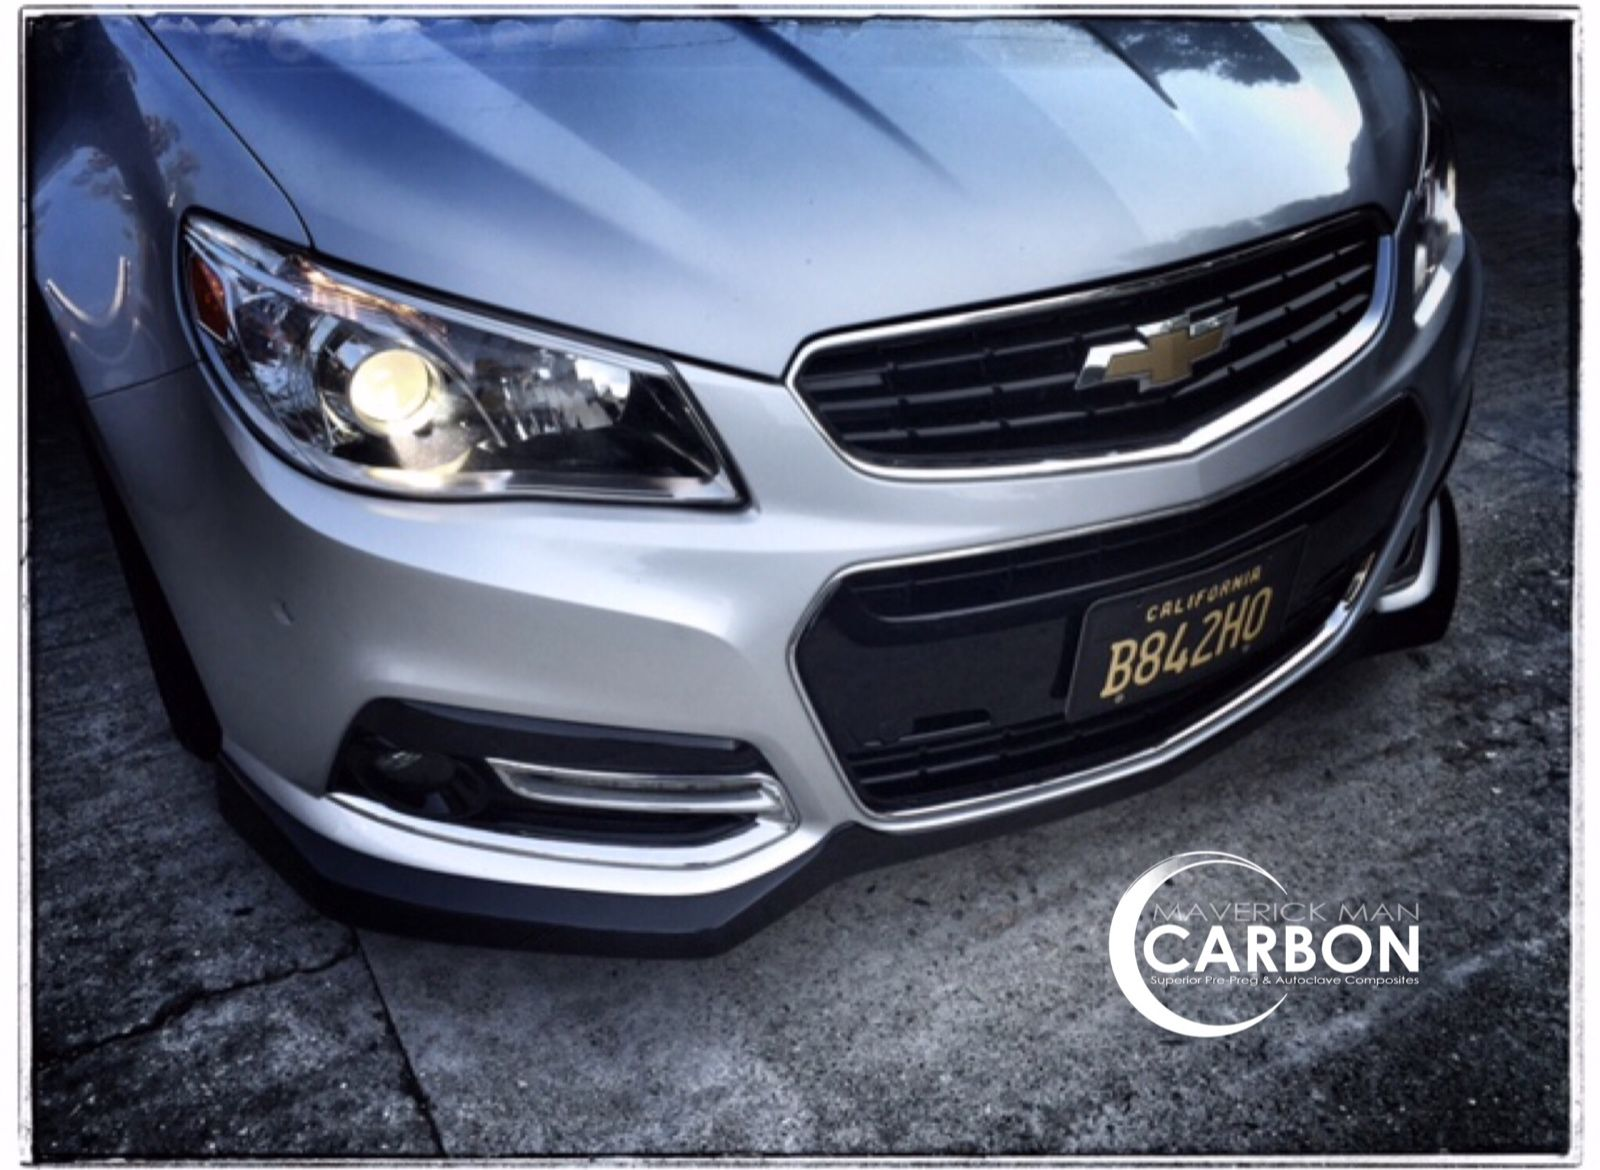 medium resolution of another happy chevy ss owner with a maverick man carbon front lip chevrolet lumina